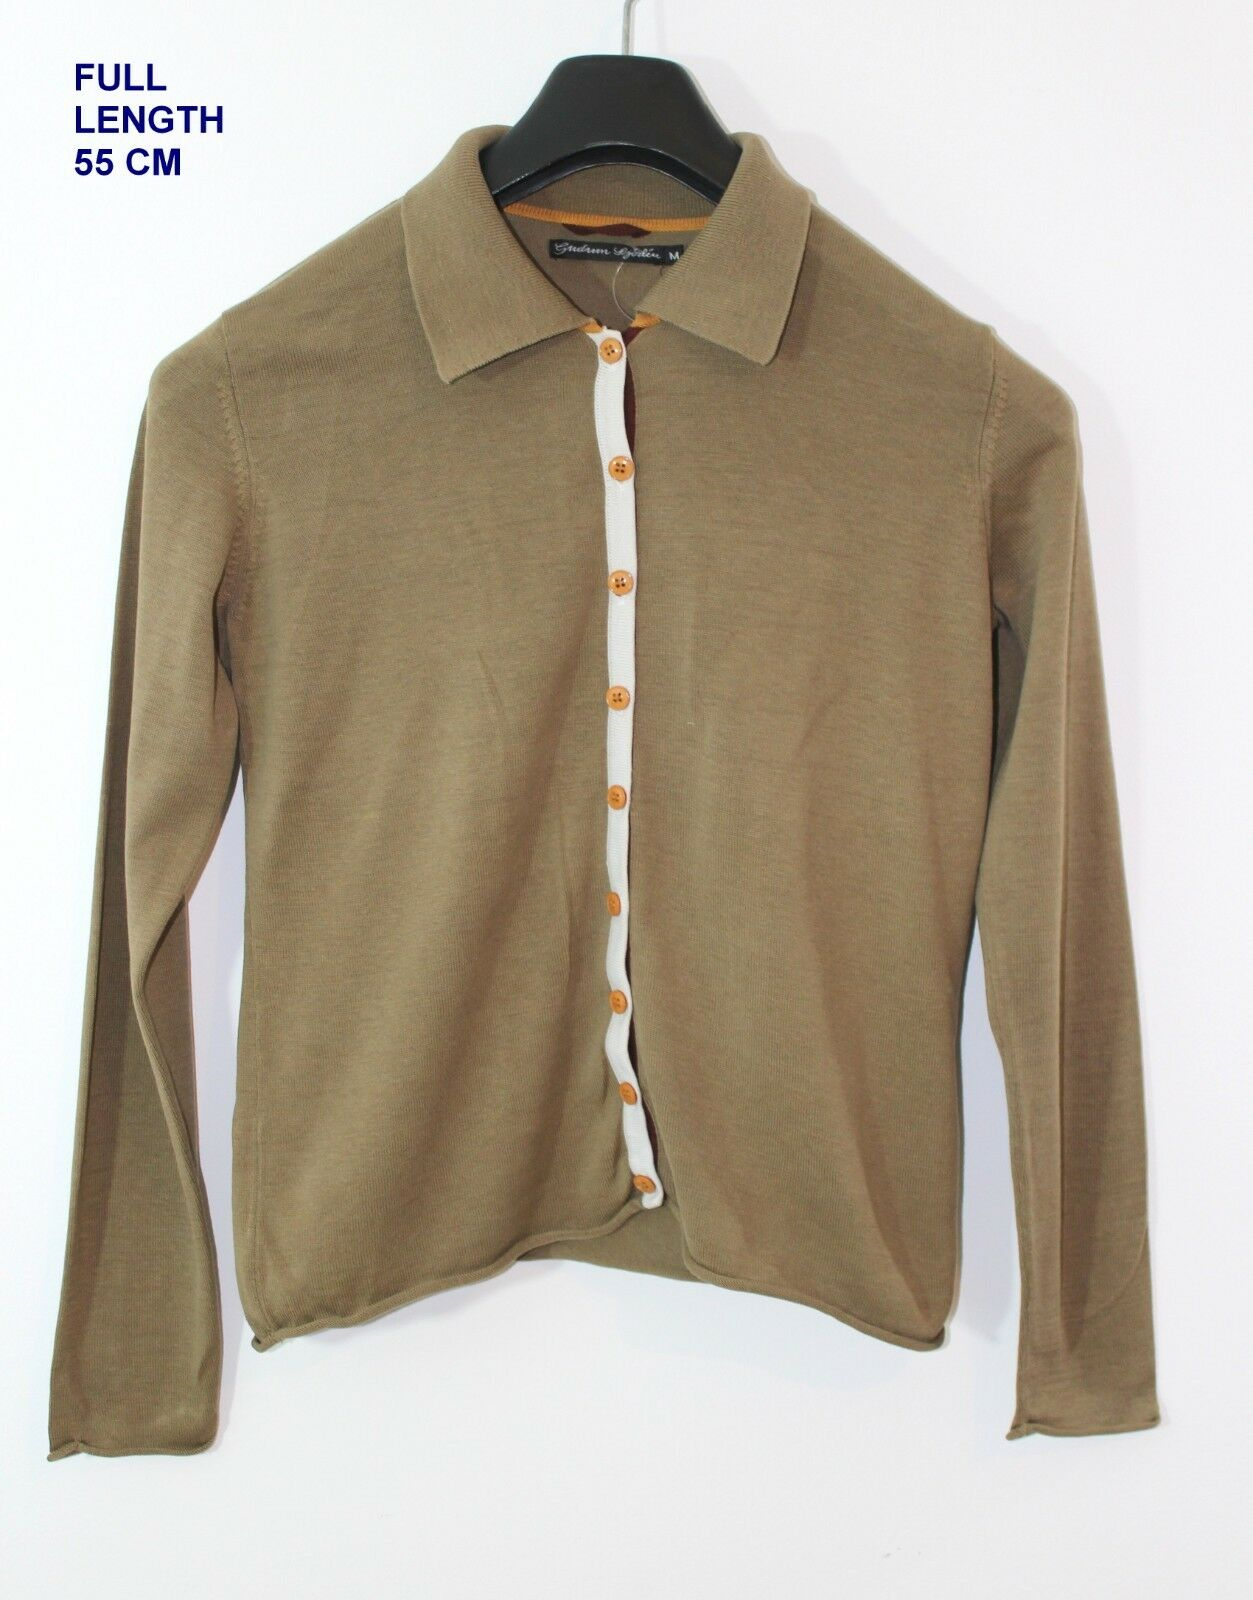 GUDRUN SJODEN SJÖDÉN  LADIES WOMAN BLOUSE SHIRT MARKED Größe M OLIVE Farbe H55CM